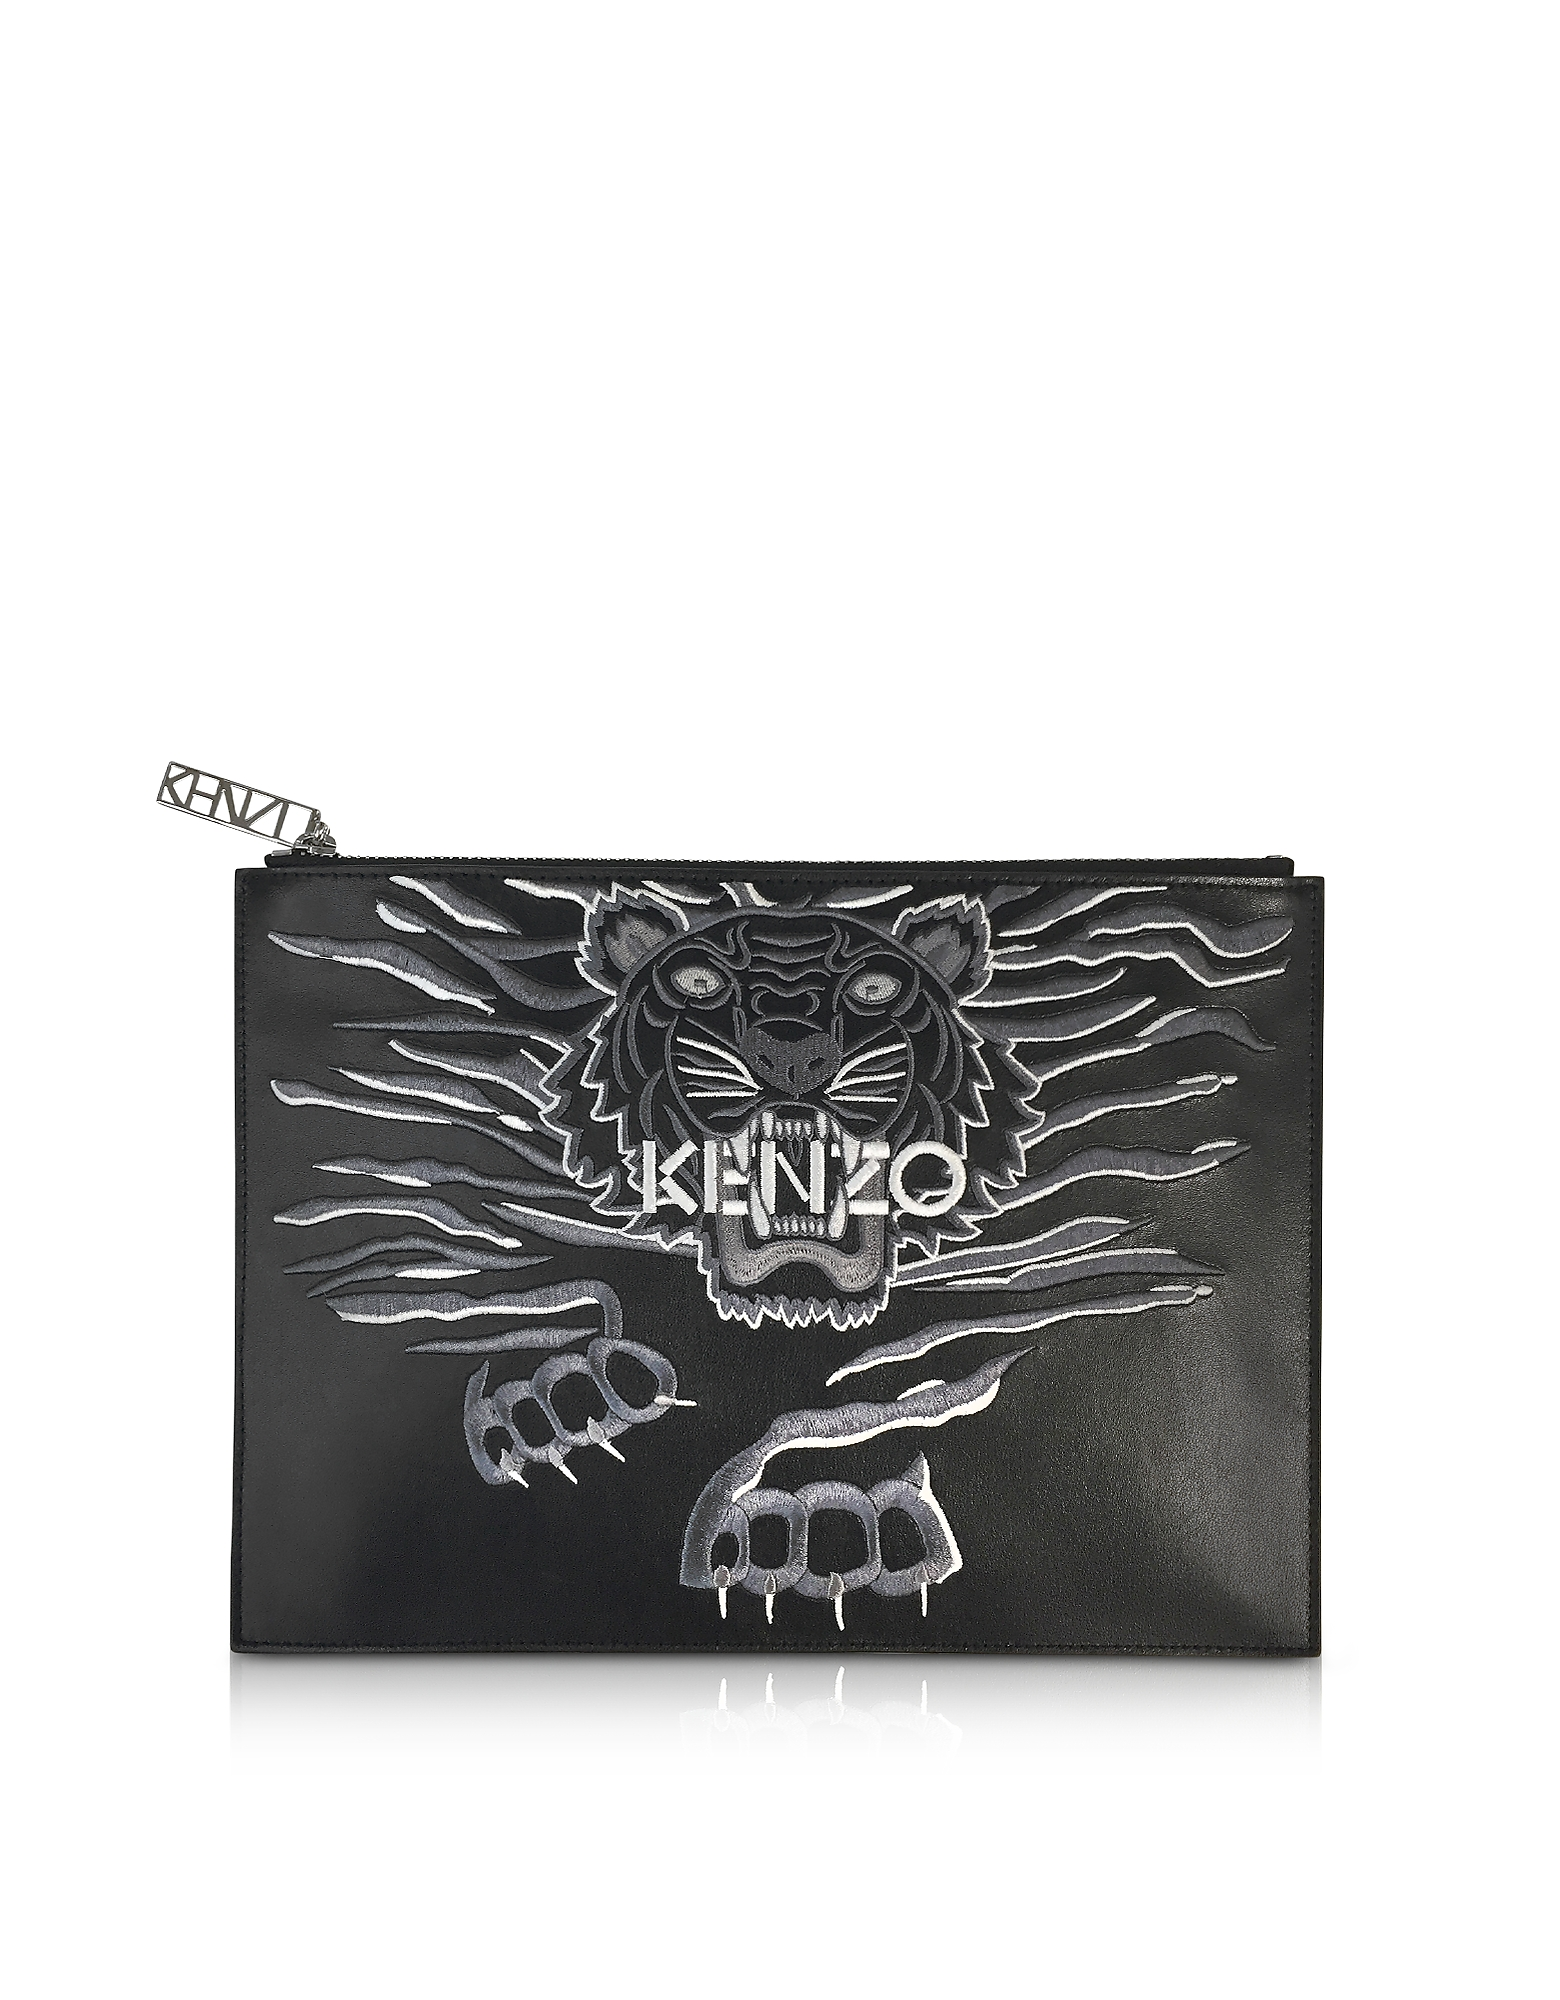 Kenzo Handbags, Black Leather A4 Geo Tiger Clutch